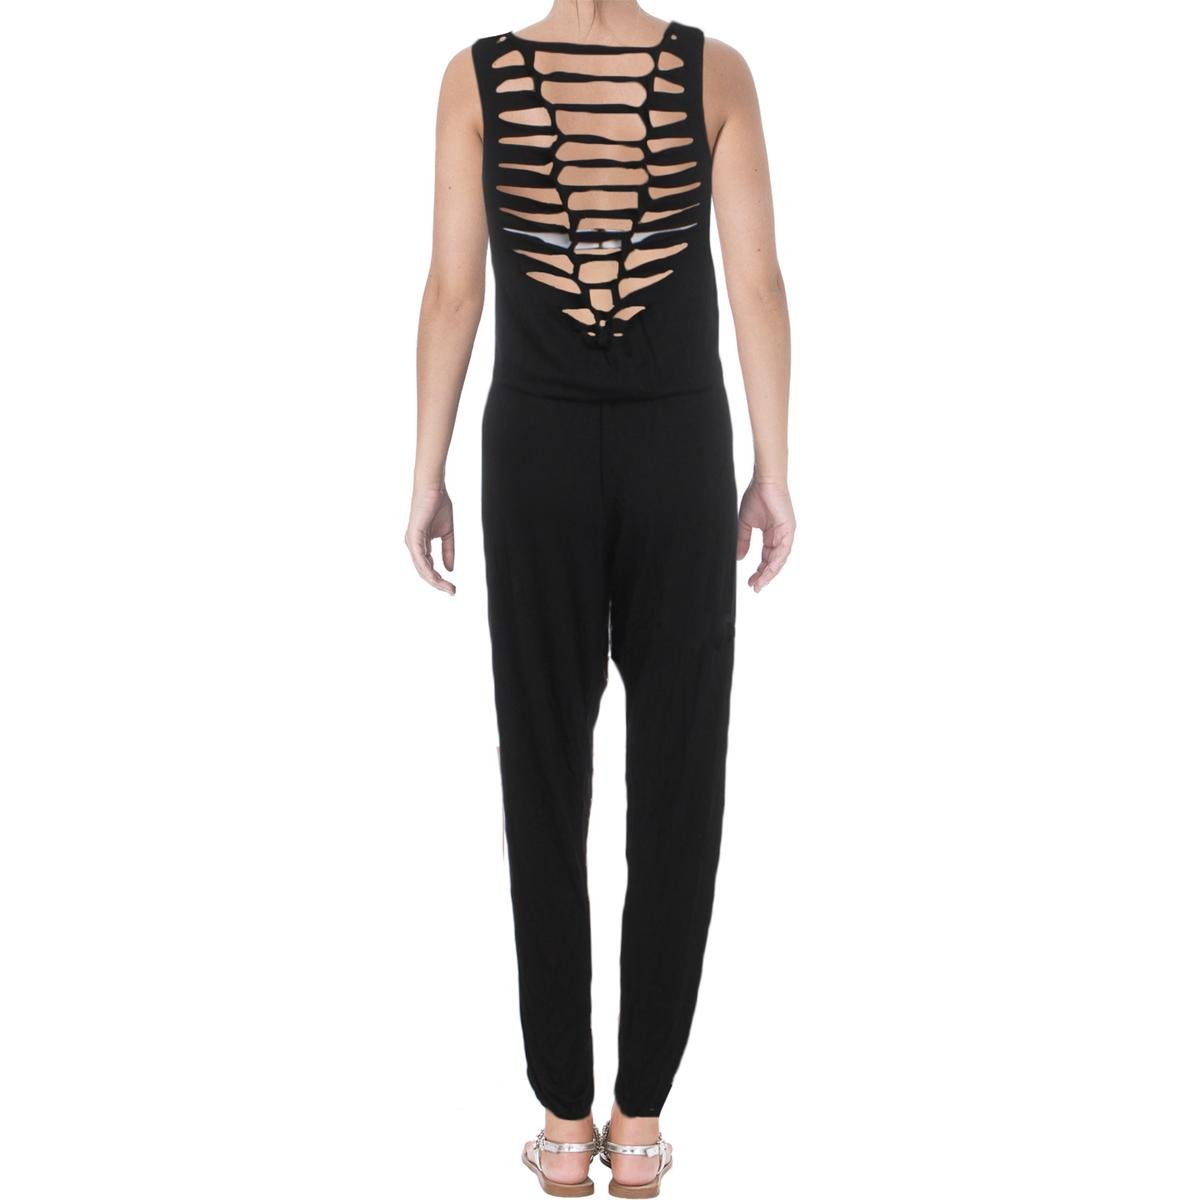 b433c214a8717 Becca by Rebecca Virtue Womens Twist and Turns Jumpsuit Swim Cover-Up Black  L at Amazon Women s Clothing store